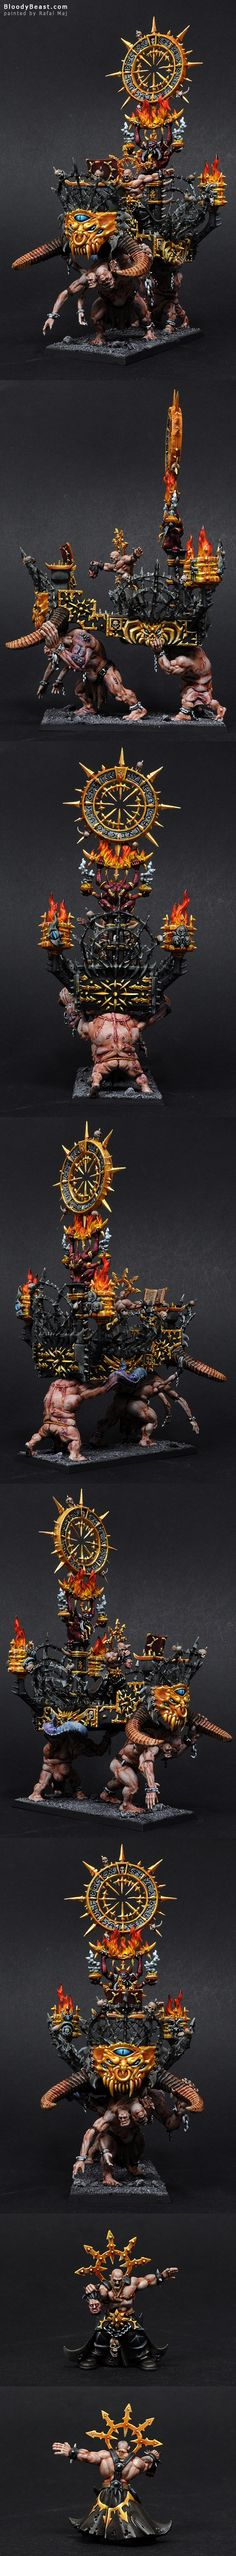 The Internet's largest gallery of painted miniatures, with a large repository of how-to articles on miniature painting Figurine Warhammer, Warhammer 40k Miniatures, Warhammer Paint, Warhammer Fantasy, Minis, Sci Fi Miniatures, Chaos Lord, Fantasy Model, Fantasy Battle